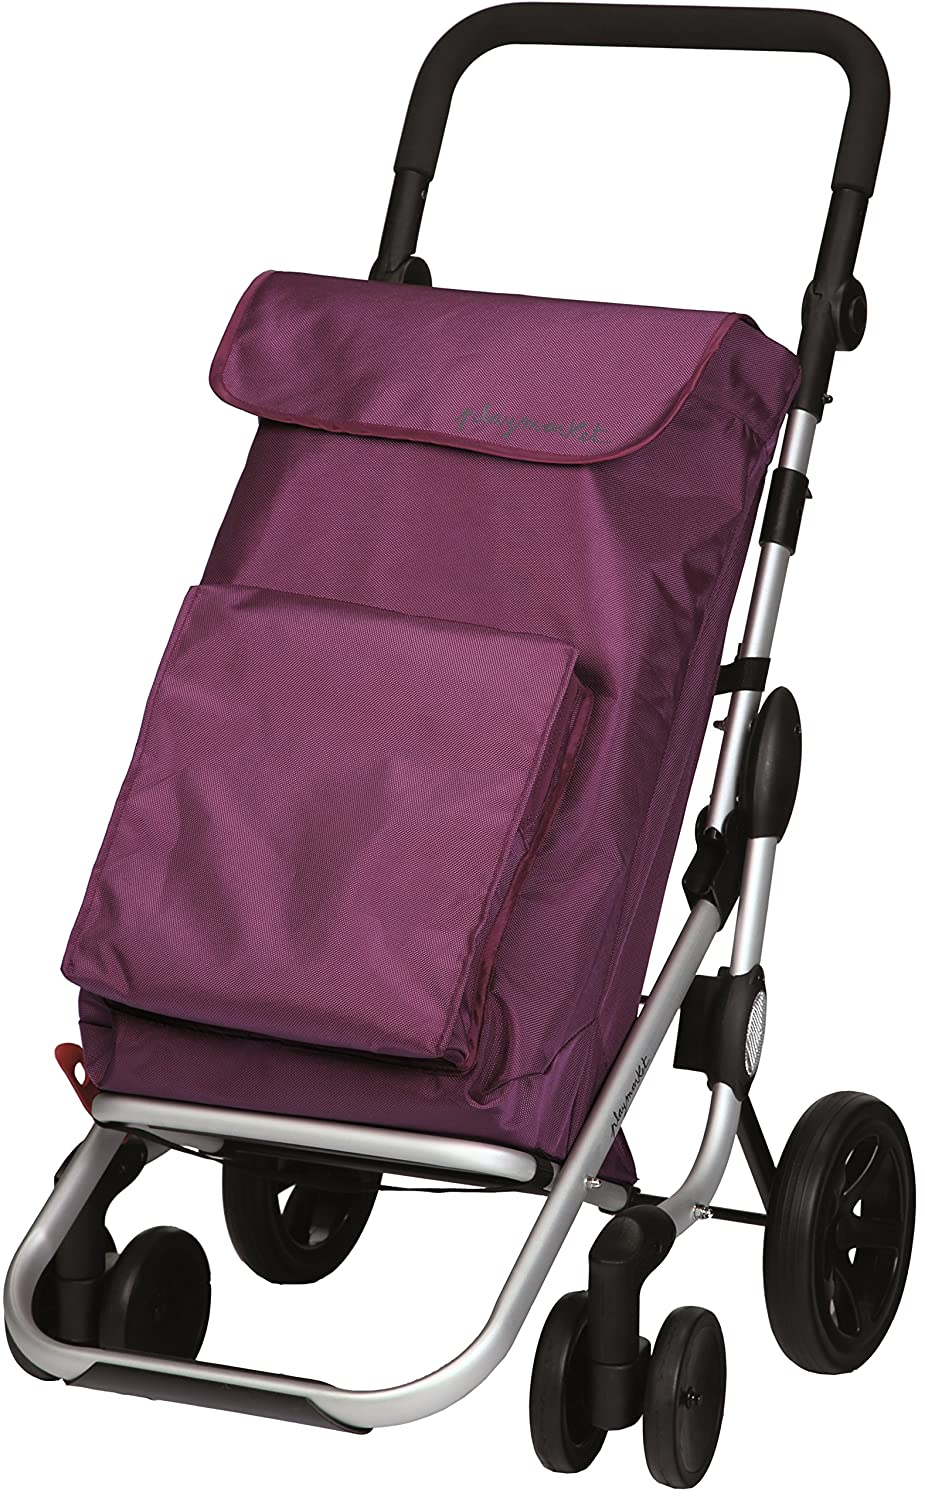 Playmarket Go Plus Large Capacity Folding Shopping Cart with Swivel Wheels, Plum